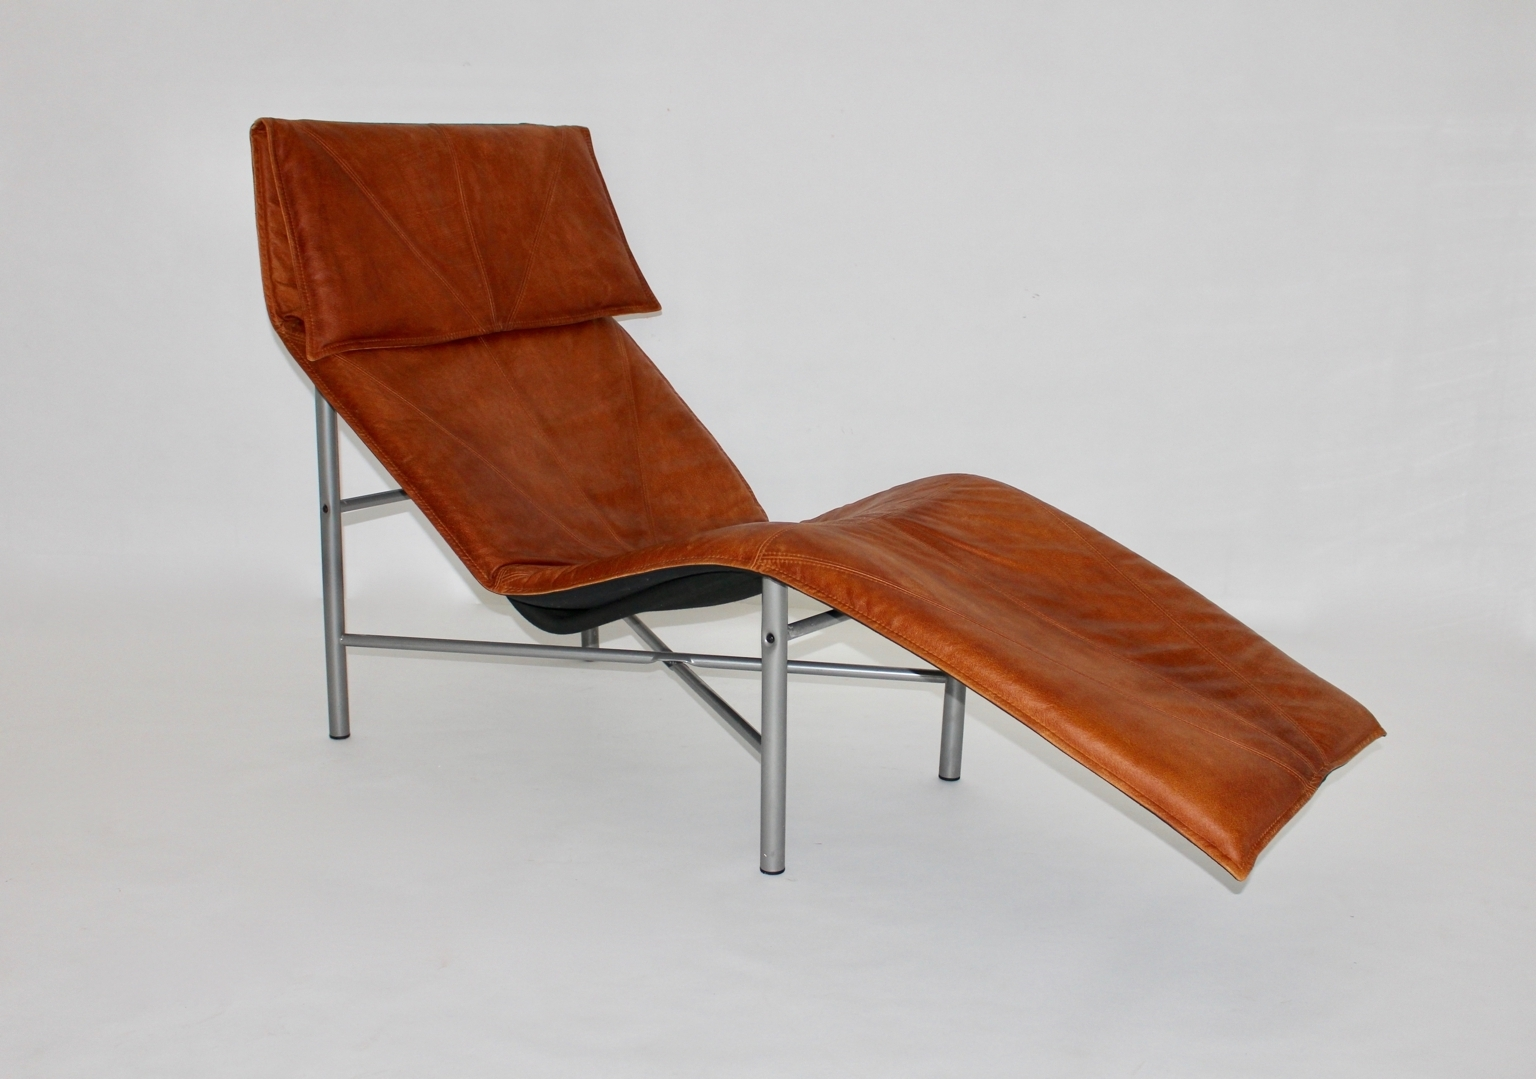 Leather Chaise Lounges Inside Latest Swedish Cognac Leather Chaise Loungetord Bjorklund, 1970S For (View 10 of 15)